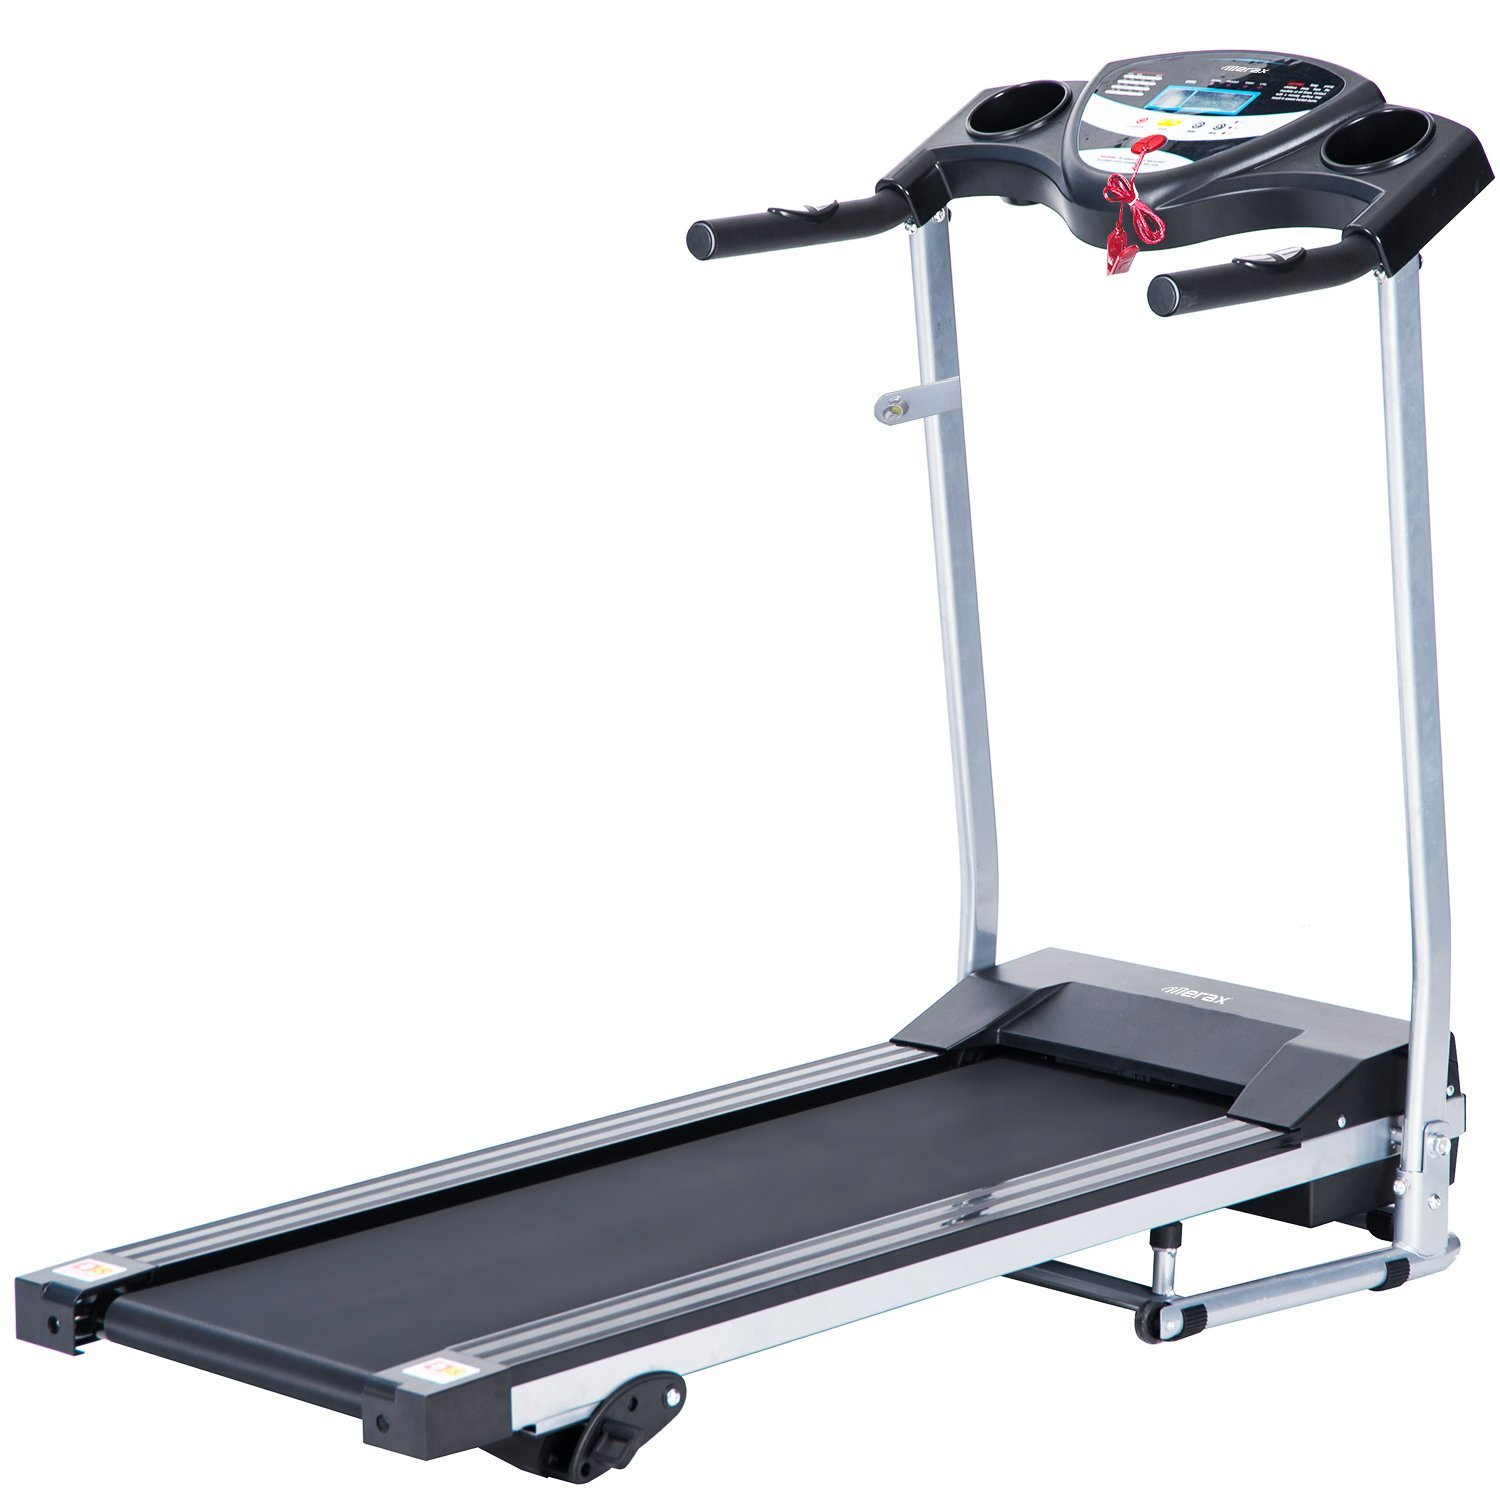 Merax JK1603E Folding Electric Treadmill Motorized Running Machine